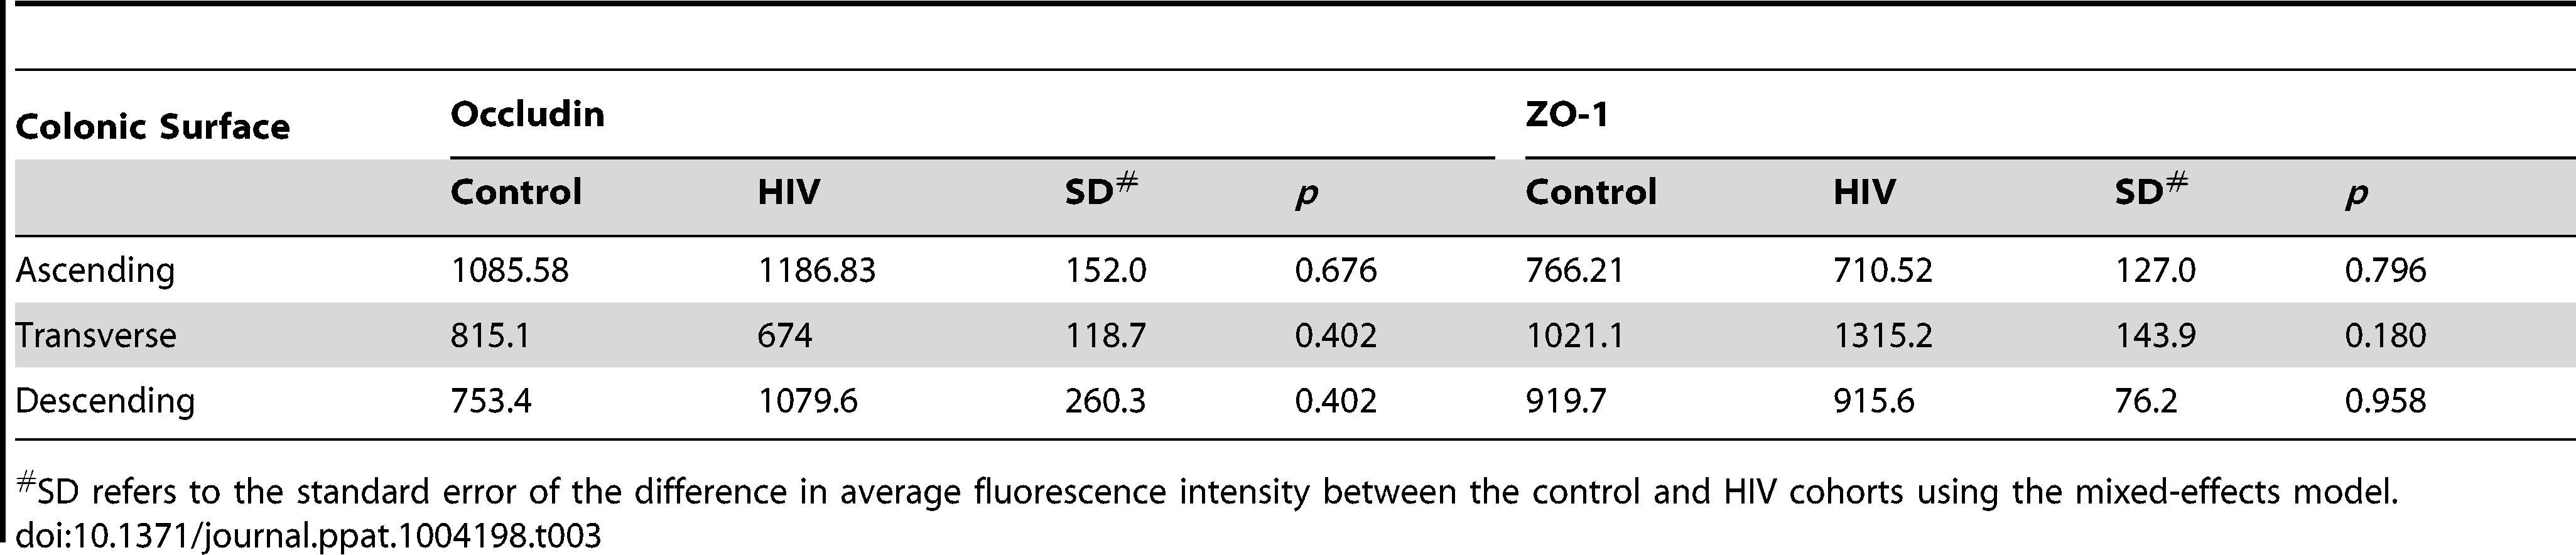 Average fluorescence intensity for occludin and ZO-1 staining of colonic surface epithelium sections.